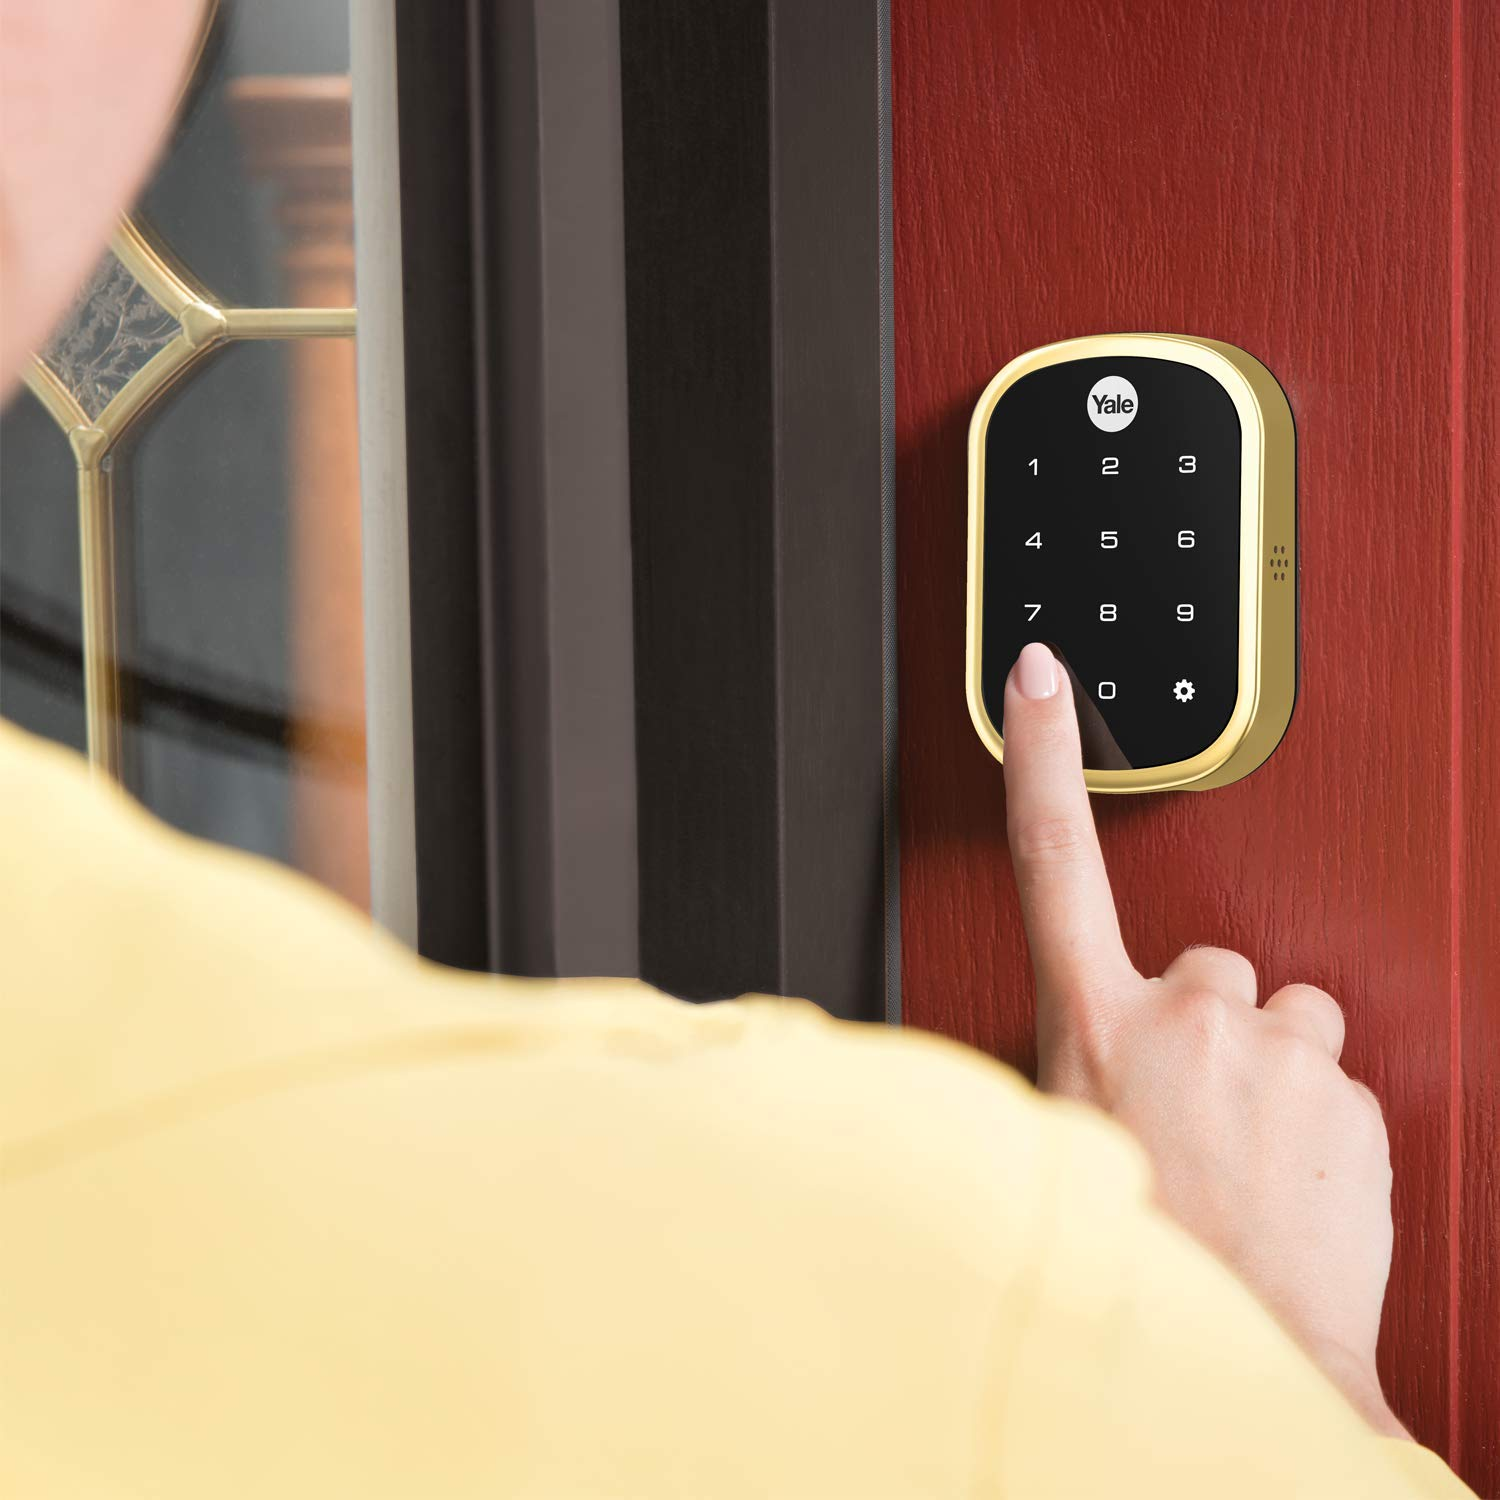 Yale Assure Lock SL, Connected by August with Kincaid BK Lever - Works with Amazon Alexa, Google Assistant and Home Kit by Yale Security (Image #6)